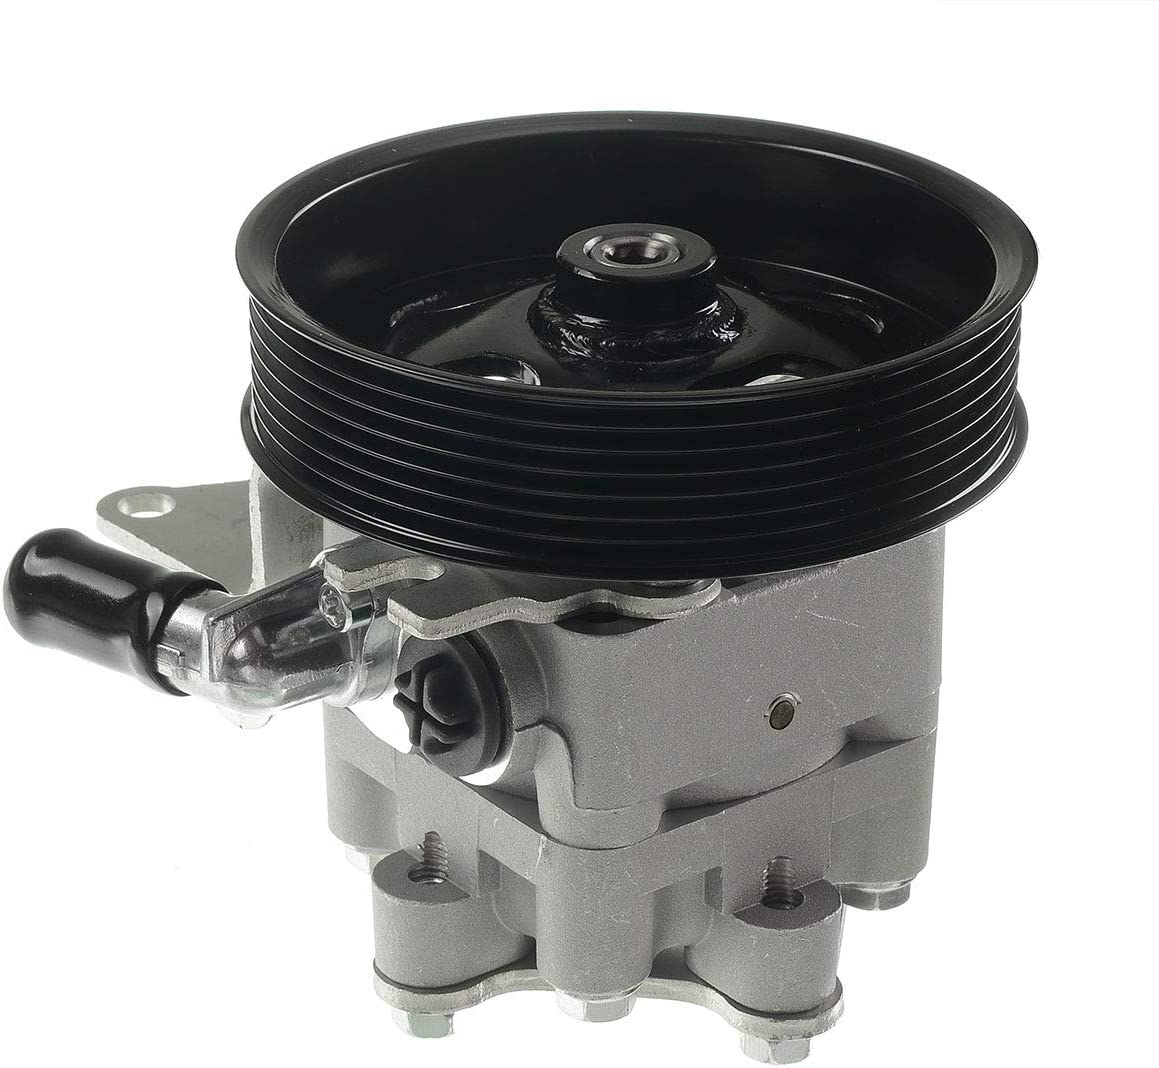 A-Premium Power Steering Pump Genuine with Nissan Pulley Compatible Max 62% OFF